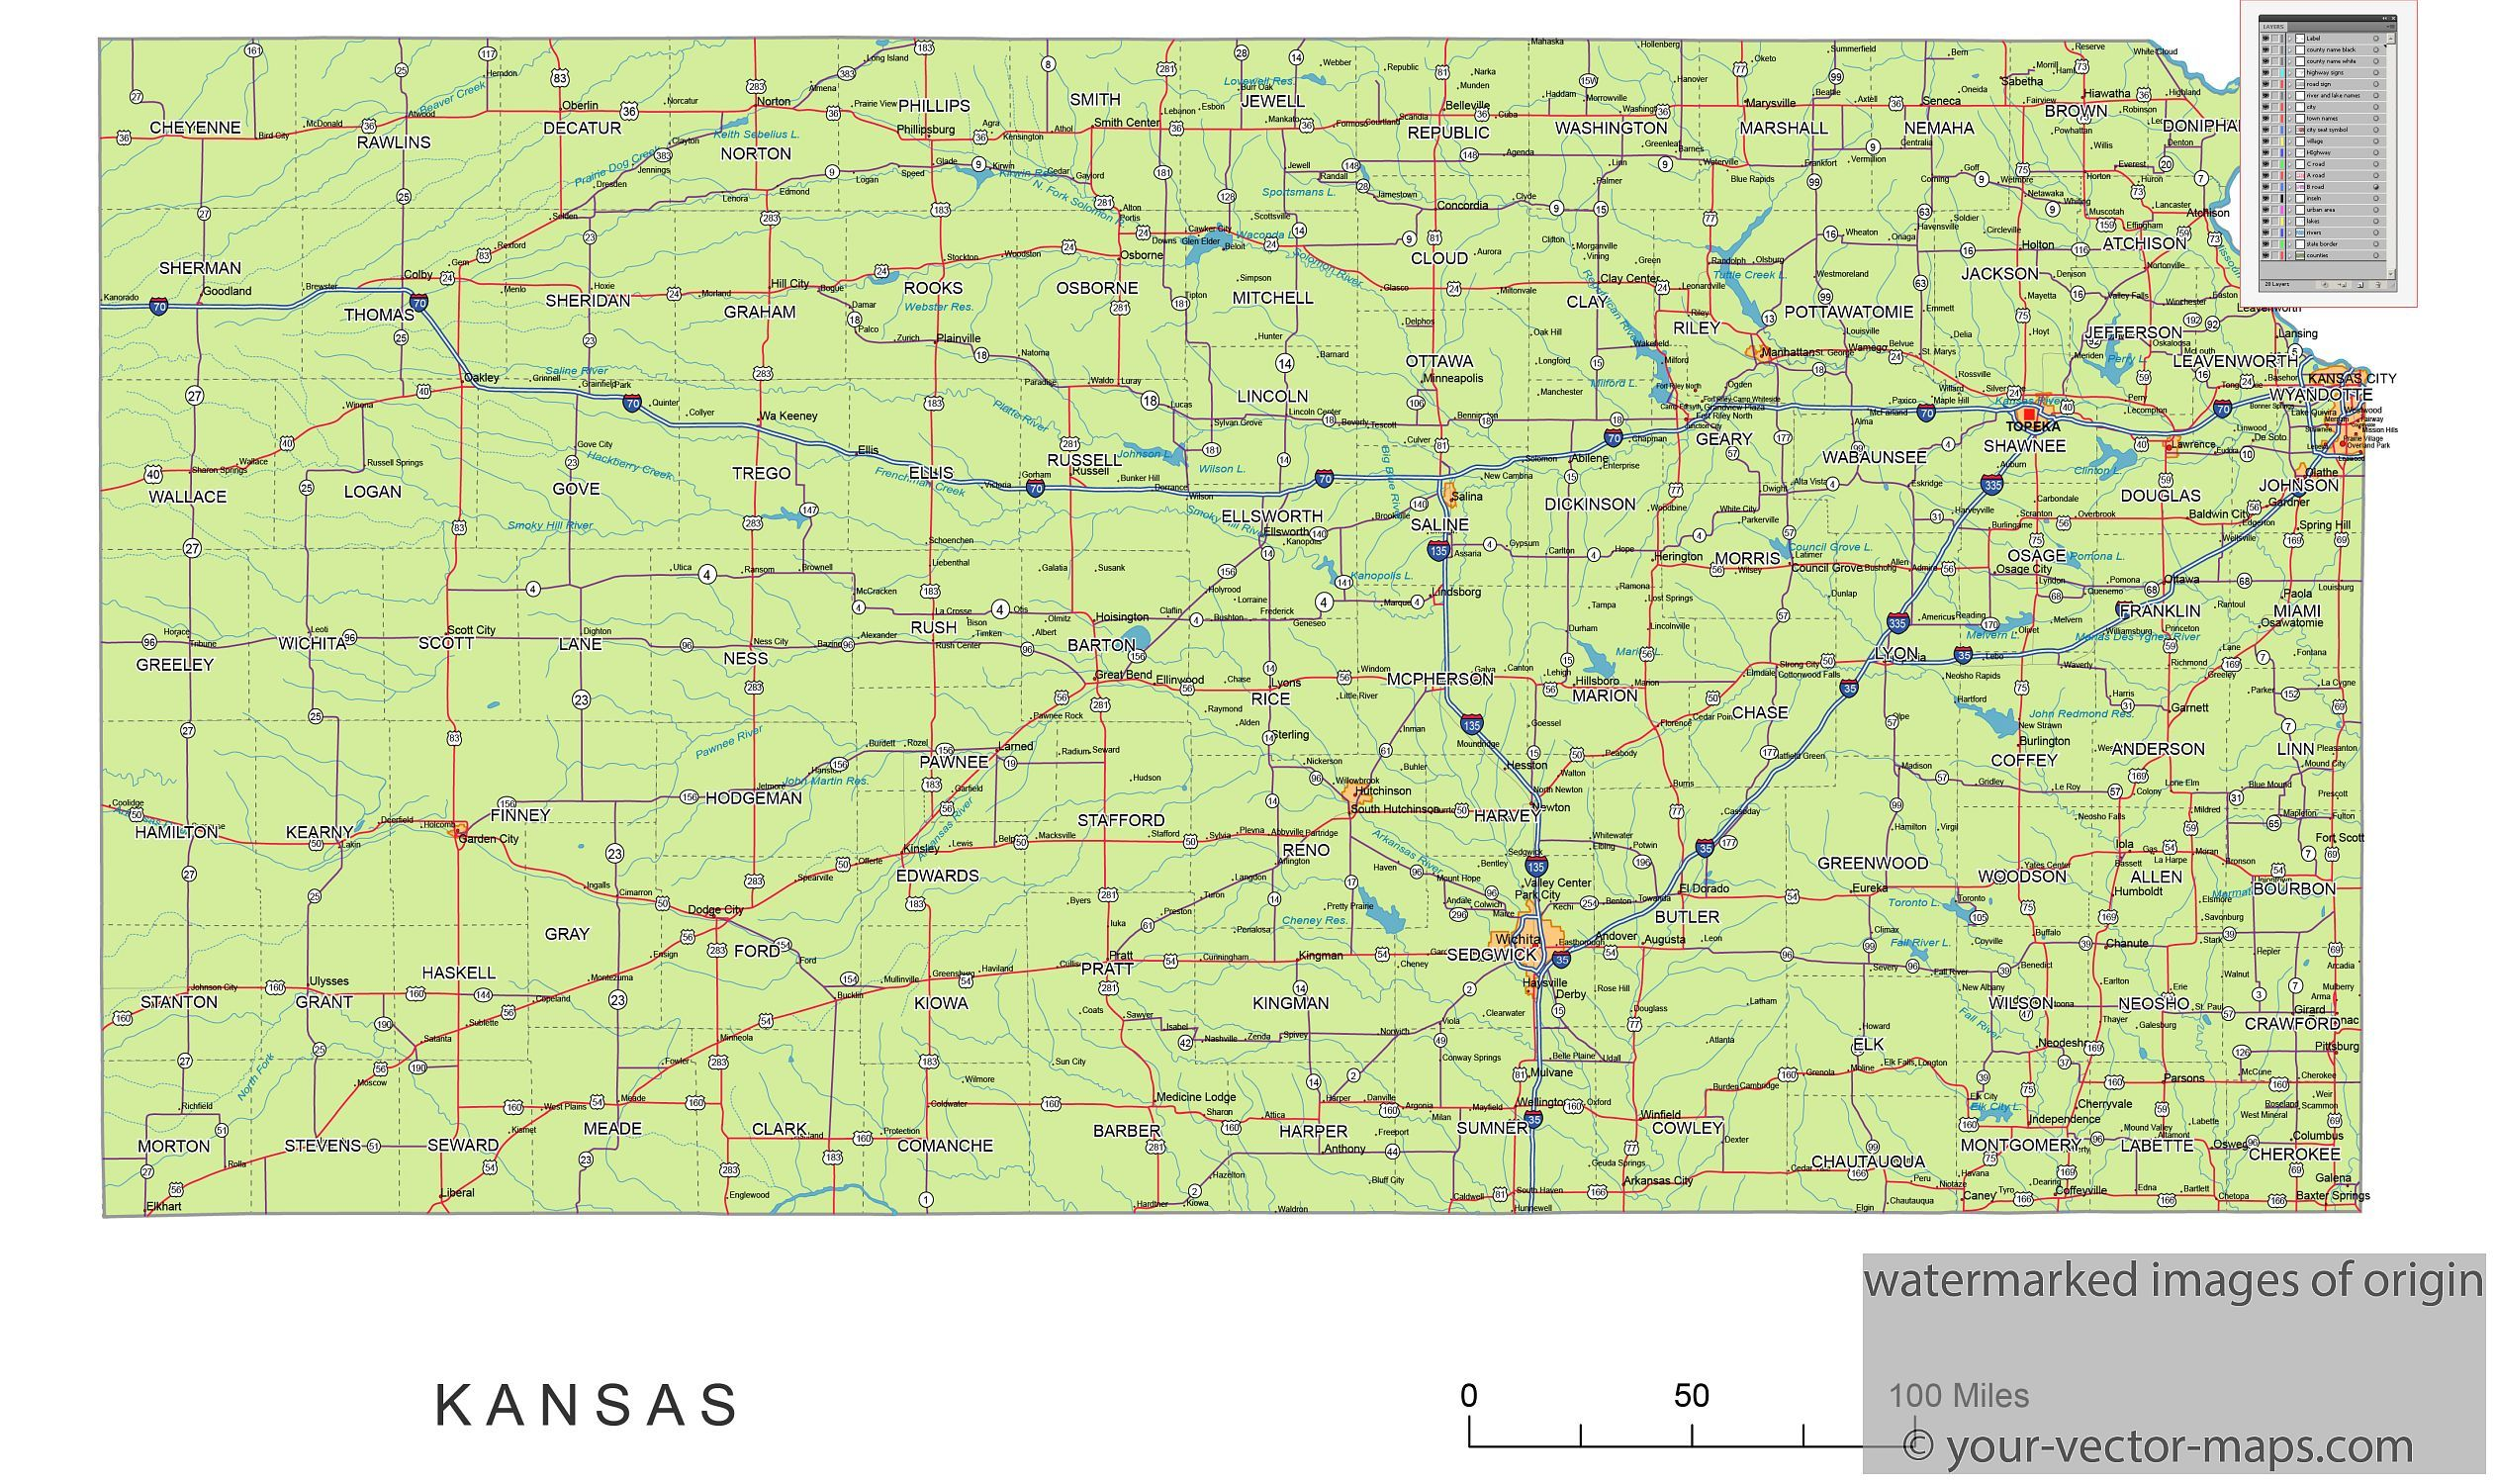 Kansas state route network map Kansas highways map Cities of